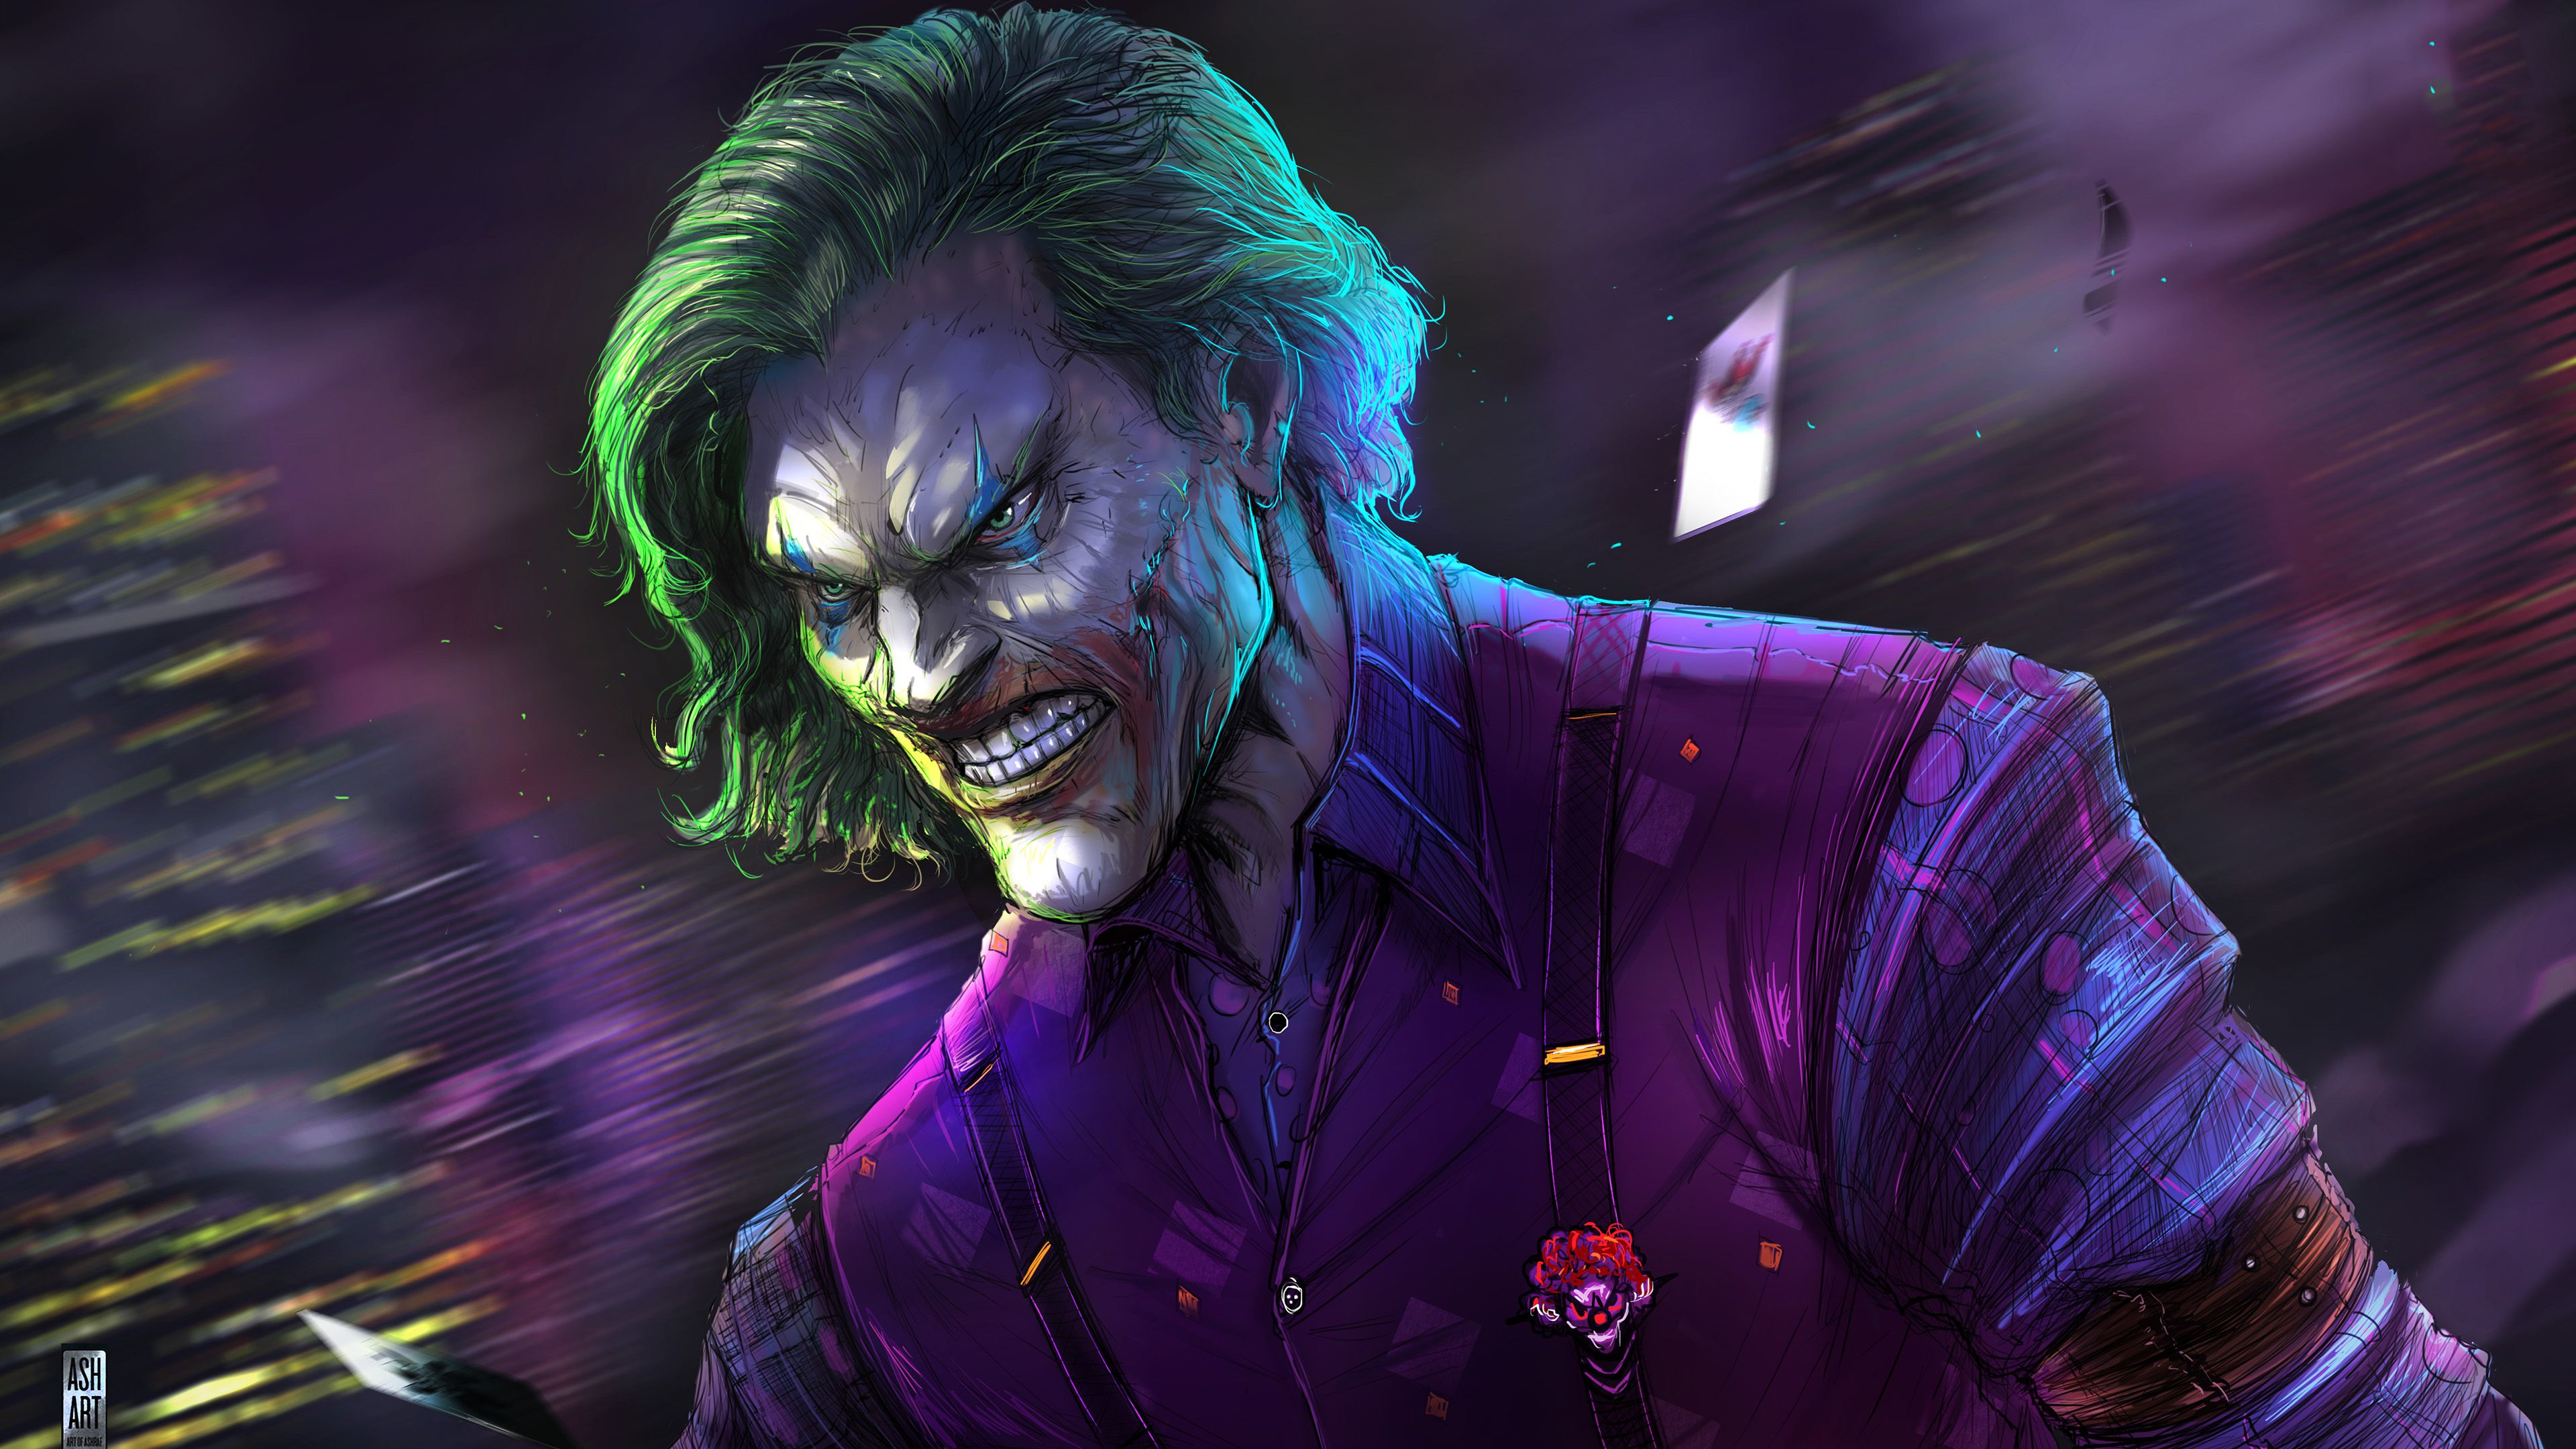 30 Joker 2019 4k Wallpapers On Wallpapersafari